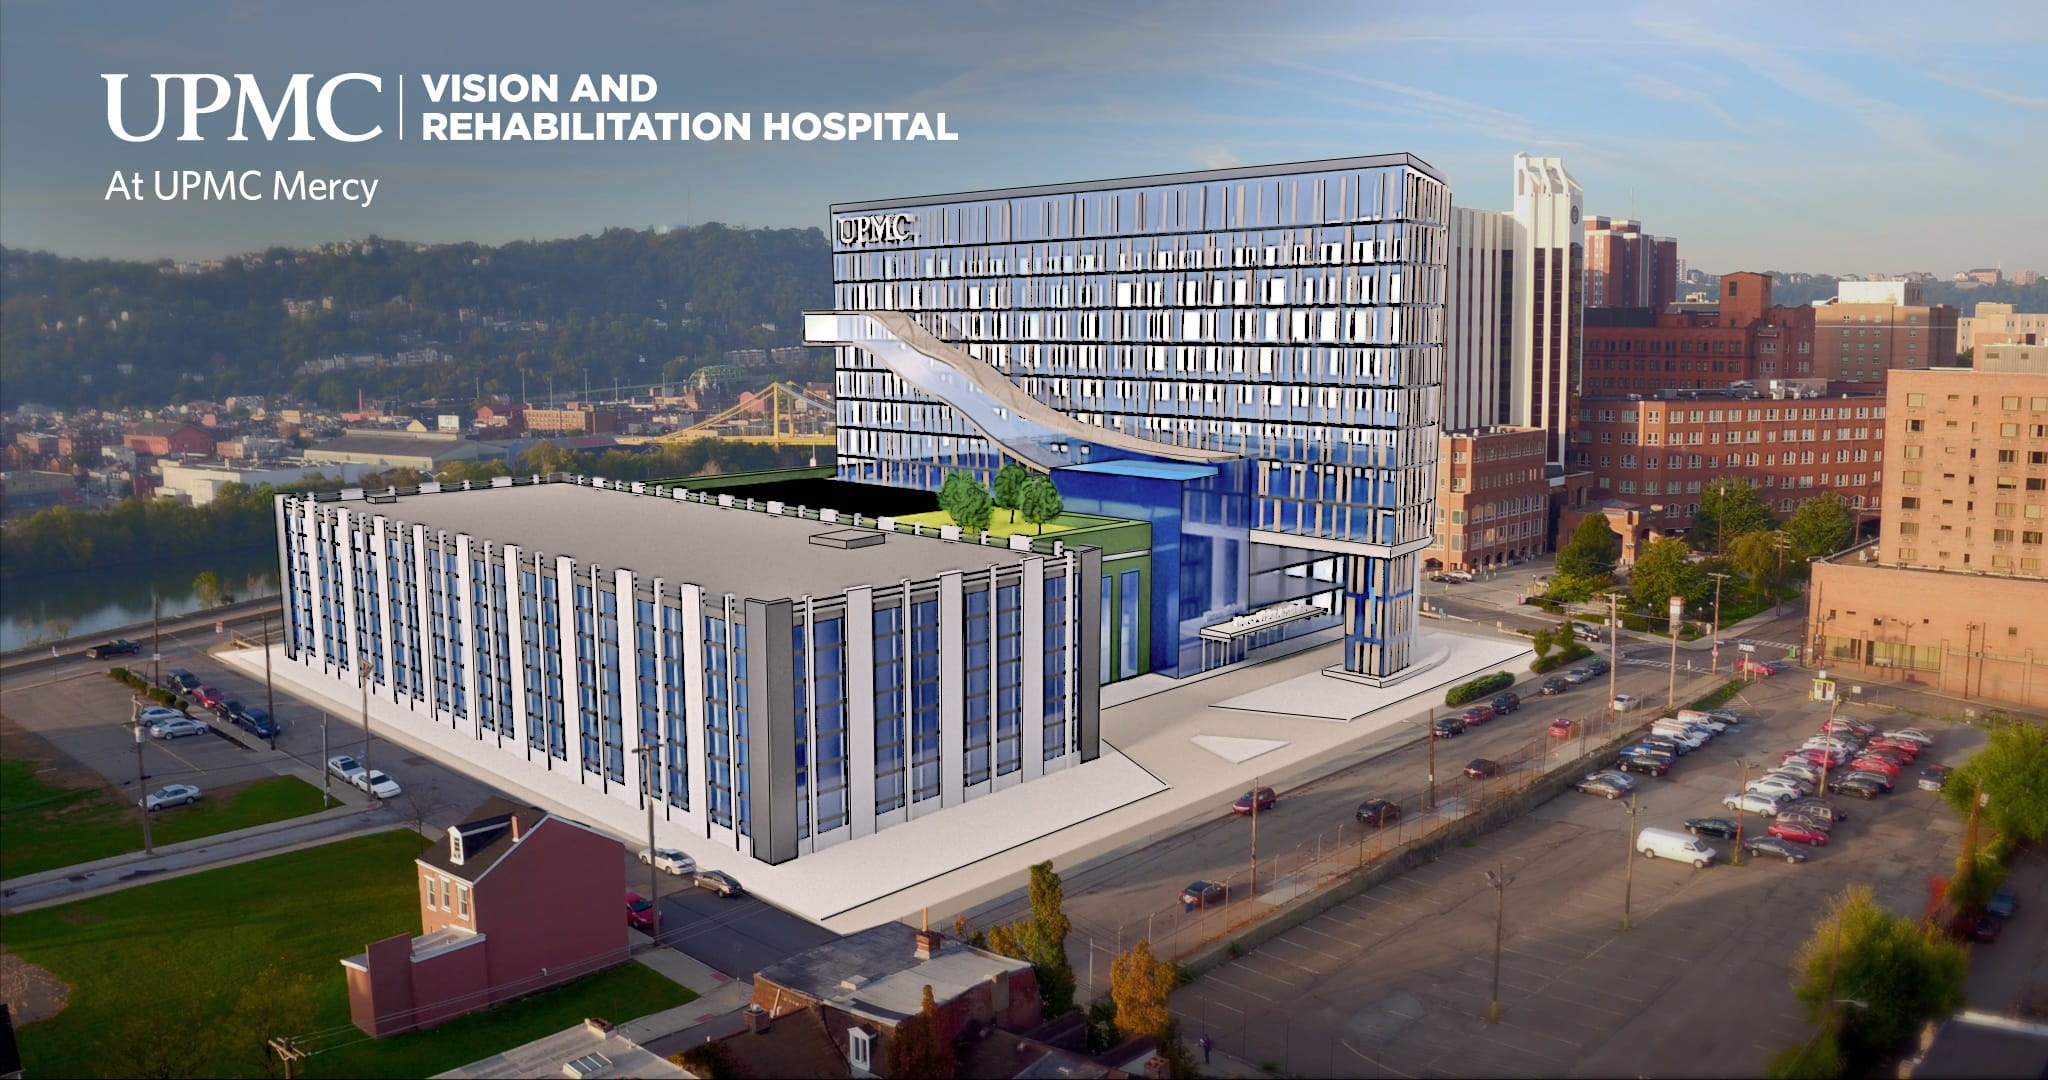 UPMC Announces Investment to Build 3 Specialty Hospitals